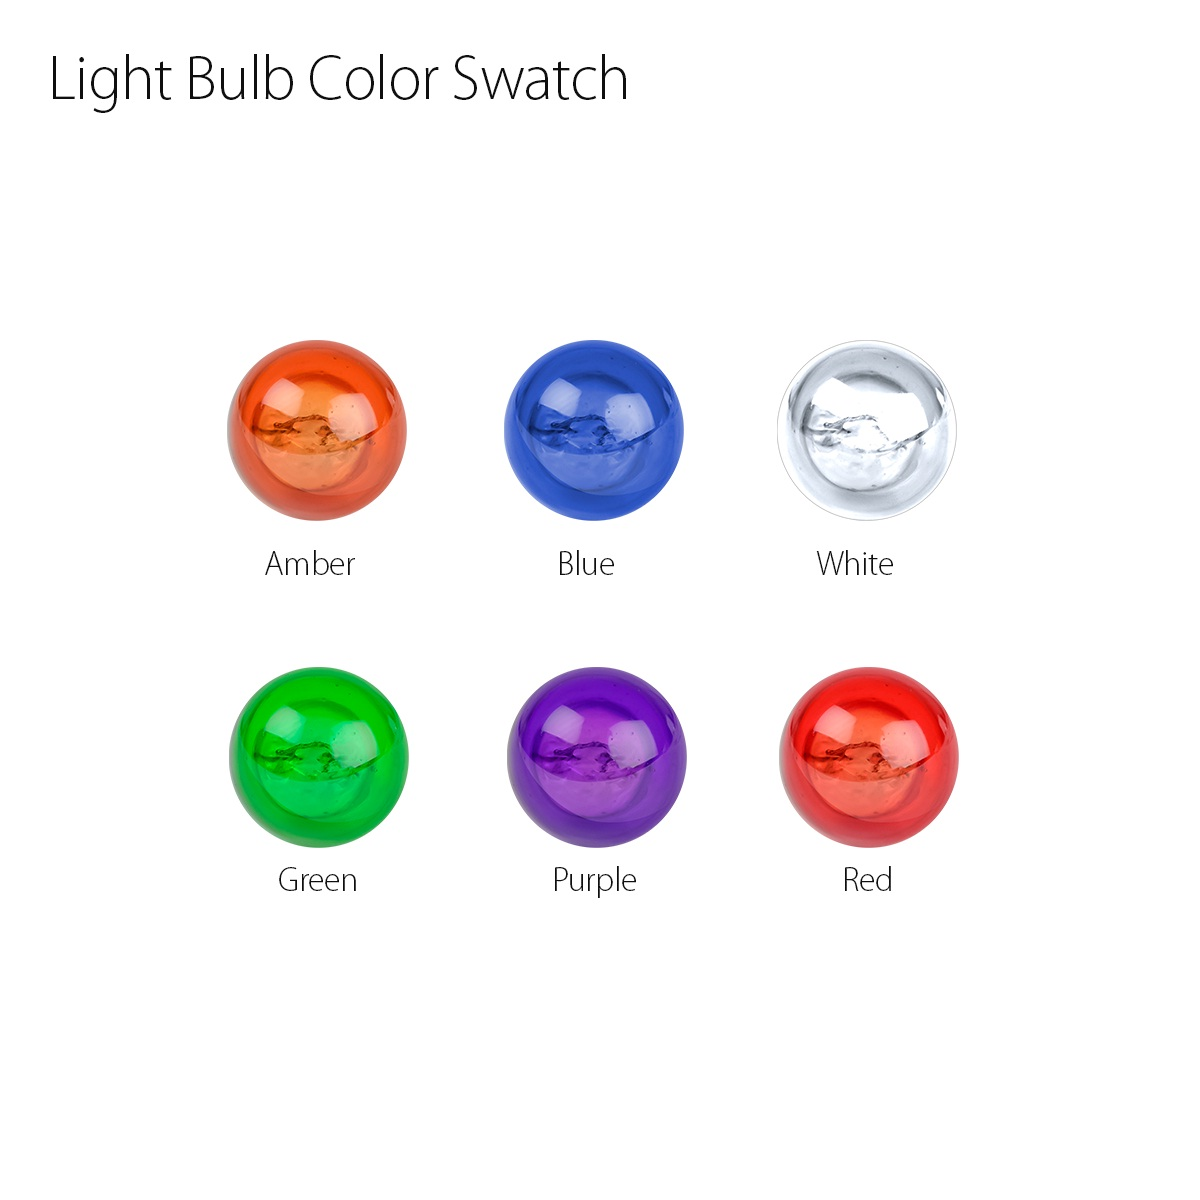 #1445 Miniature Replacement Light Bulb Color Swatch